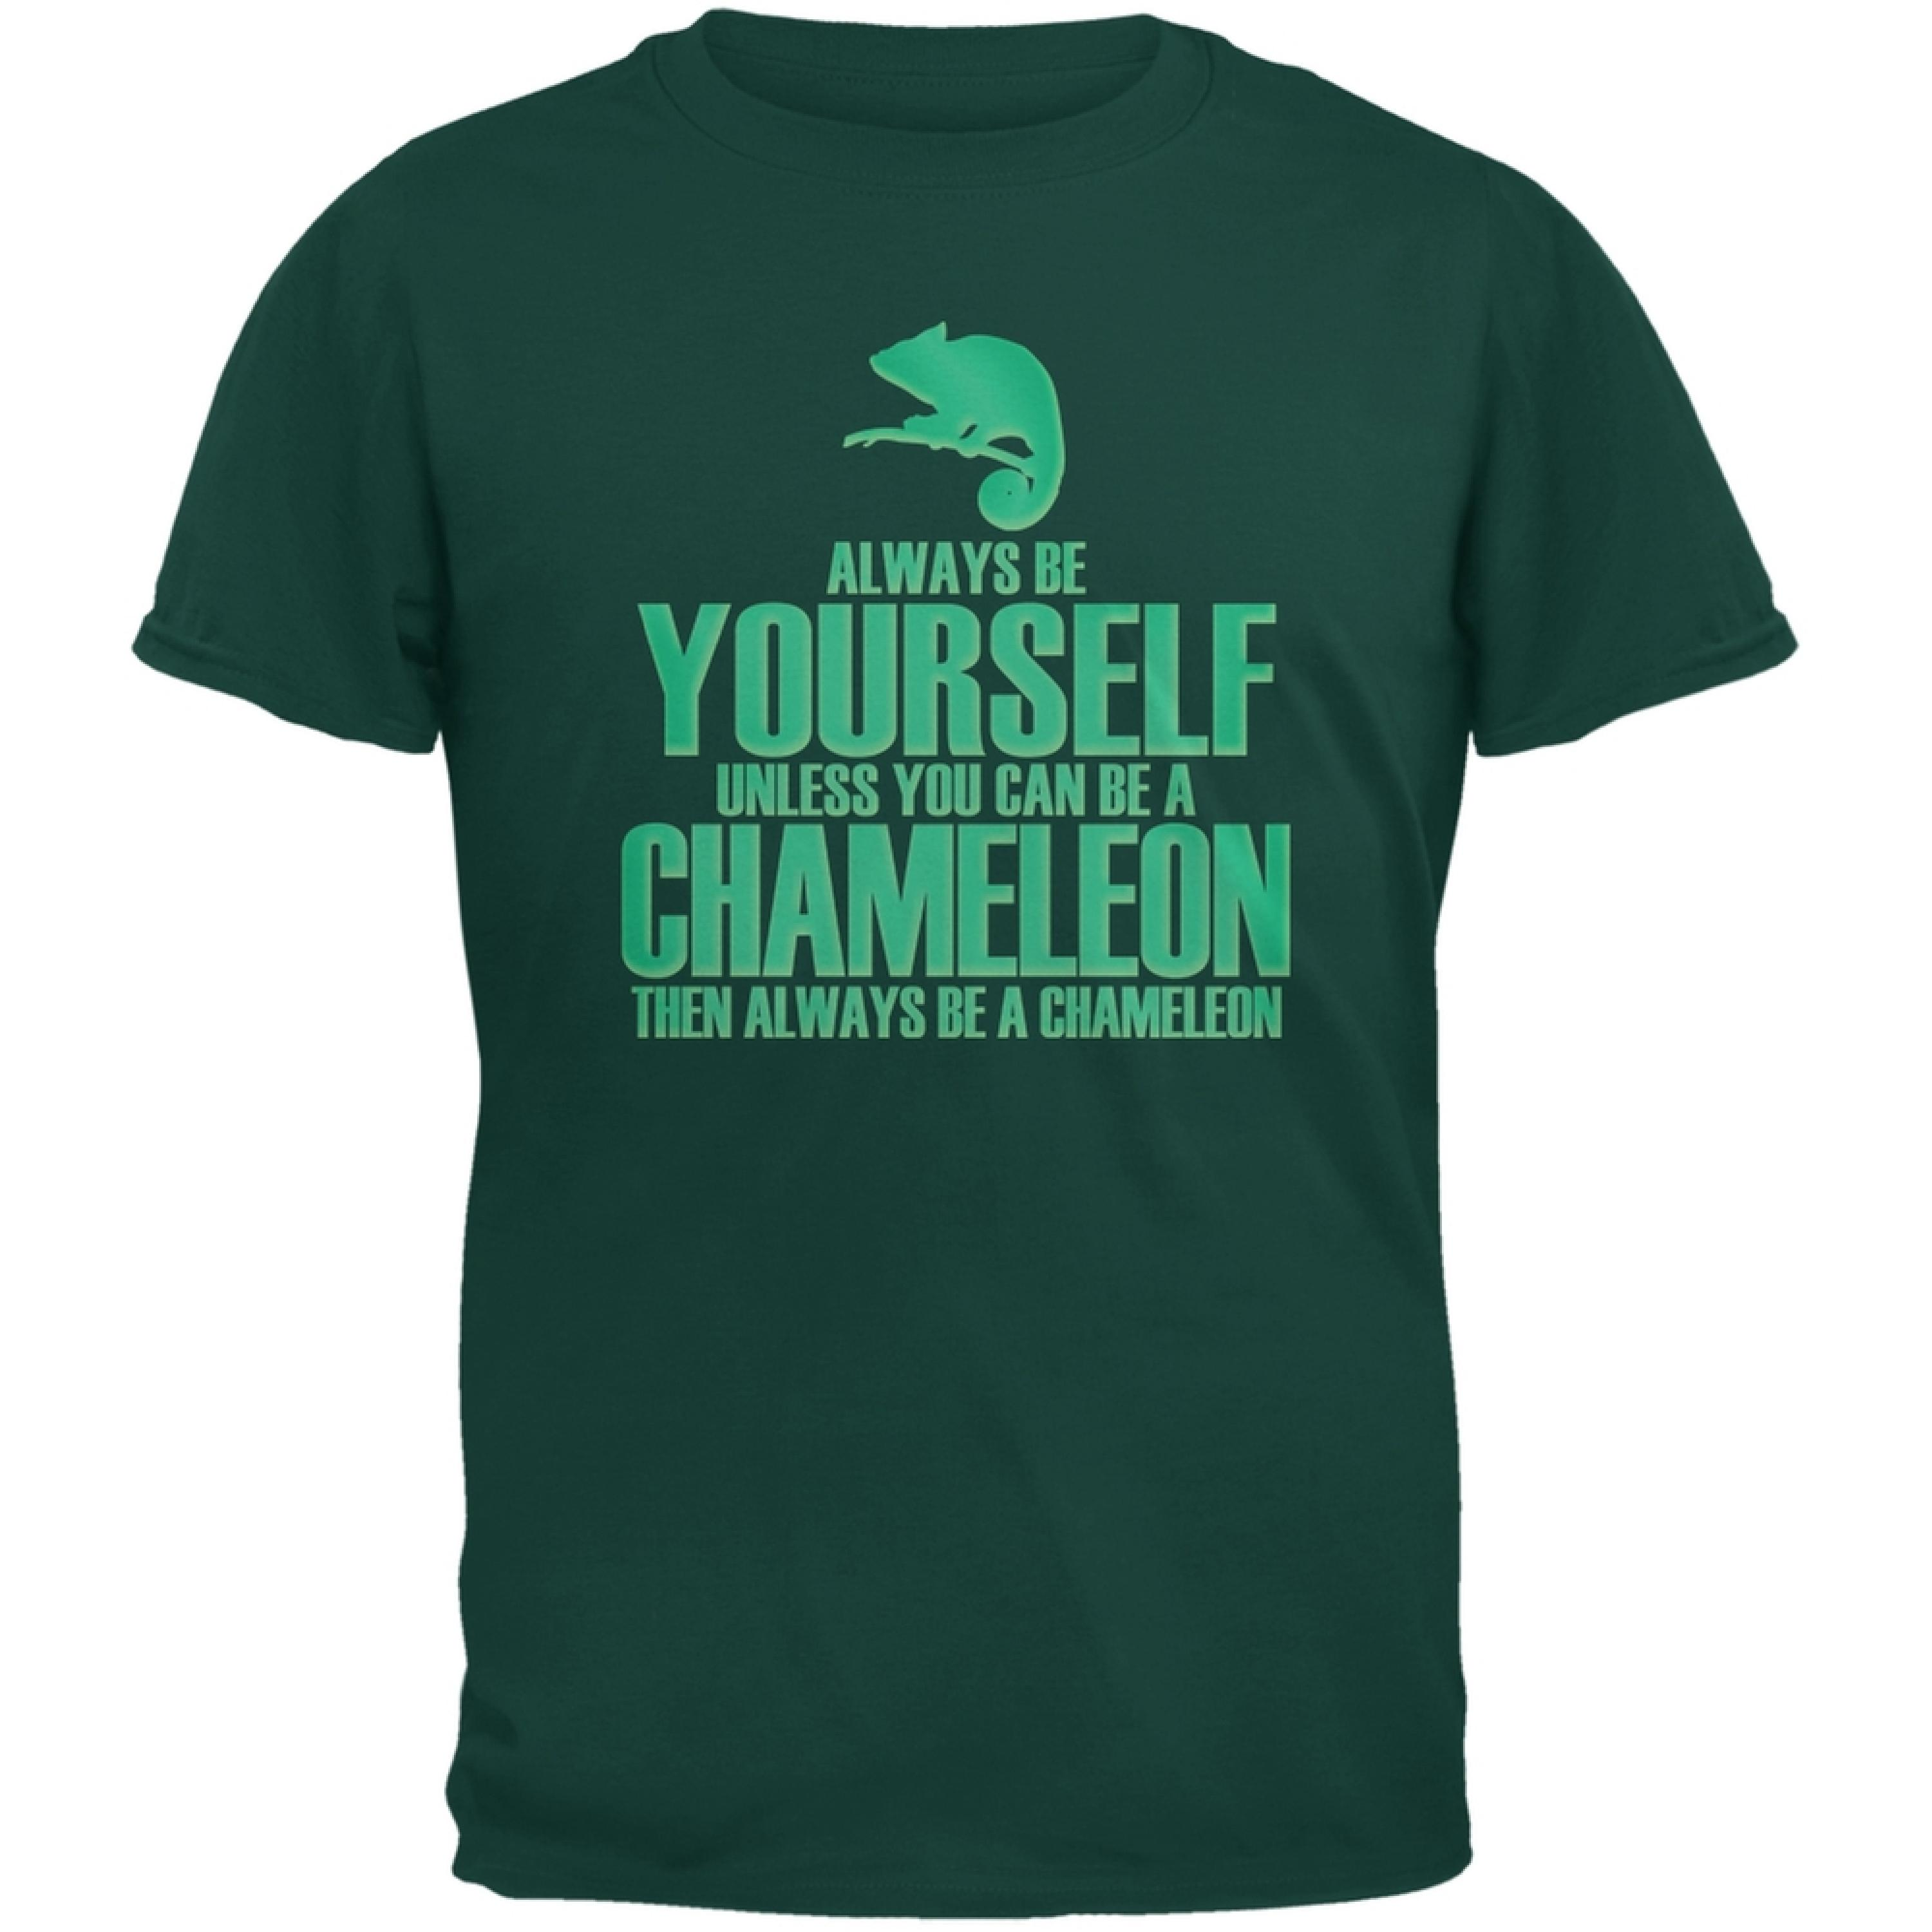 Always Be Yourself Chameleon Forest Green Adult T-Shirt